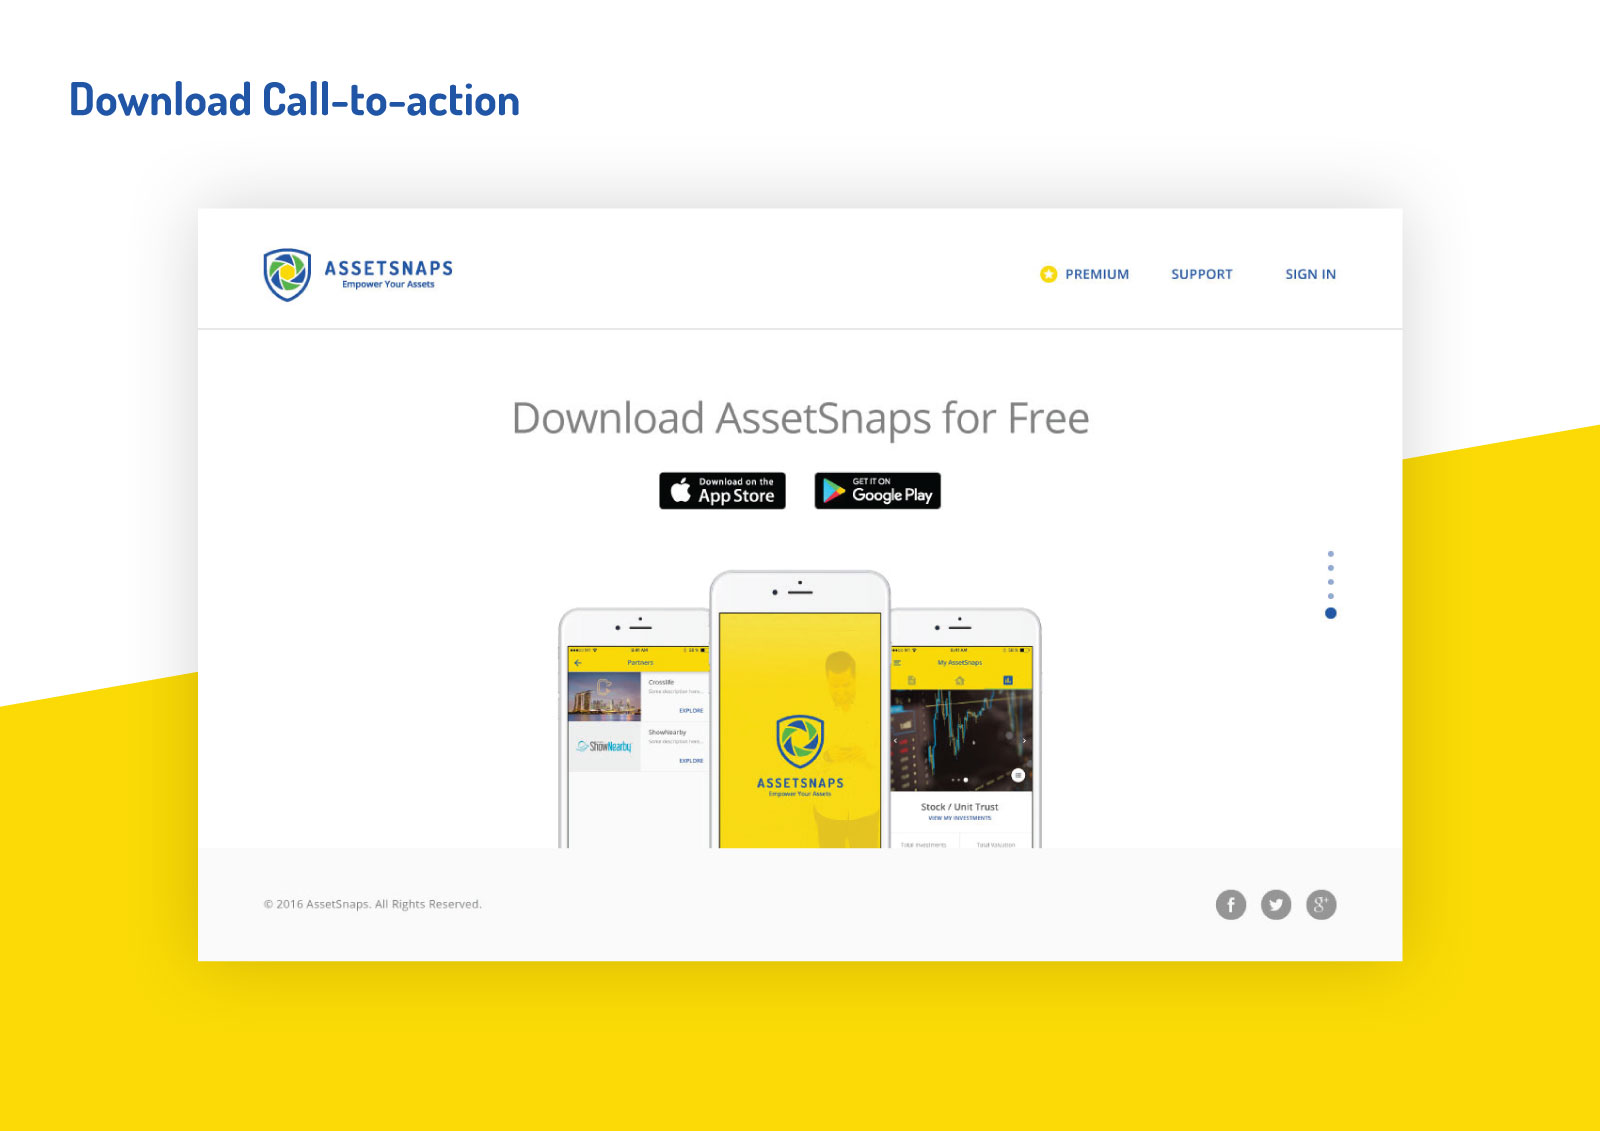 Asset Snaps - Download Call-to-action